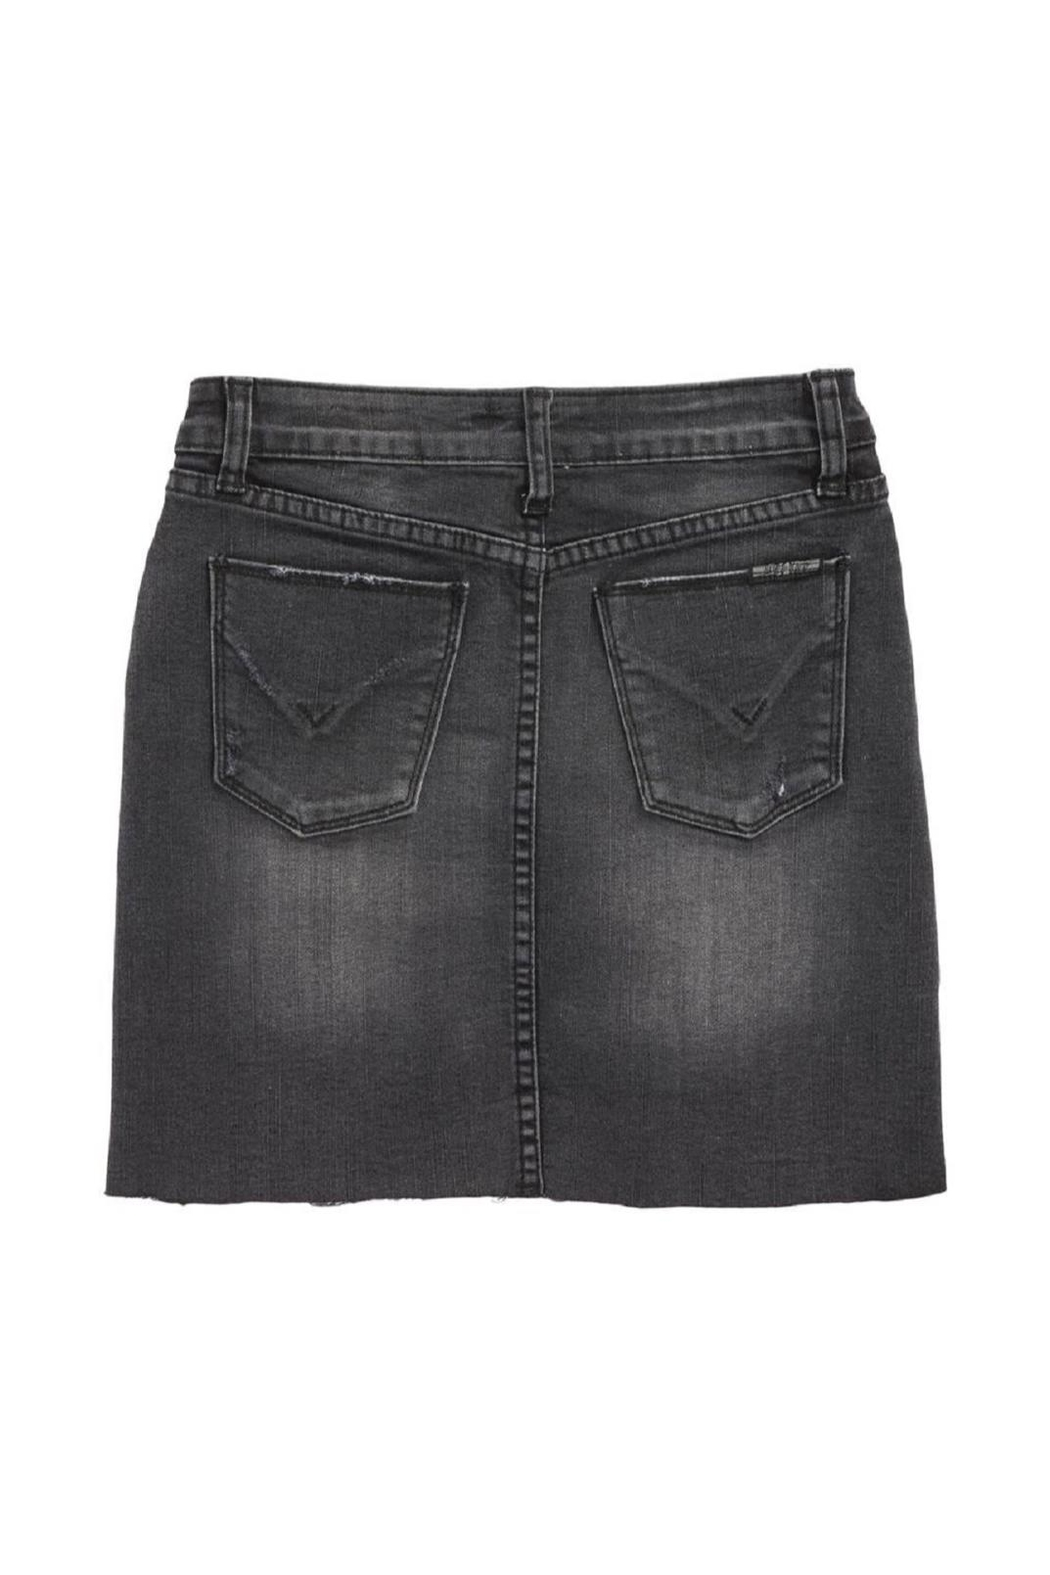 Hudson Jeans Denim Mini Skirt - Front Full Image